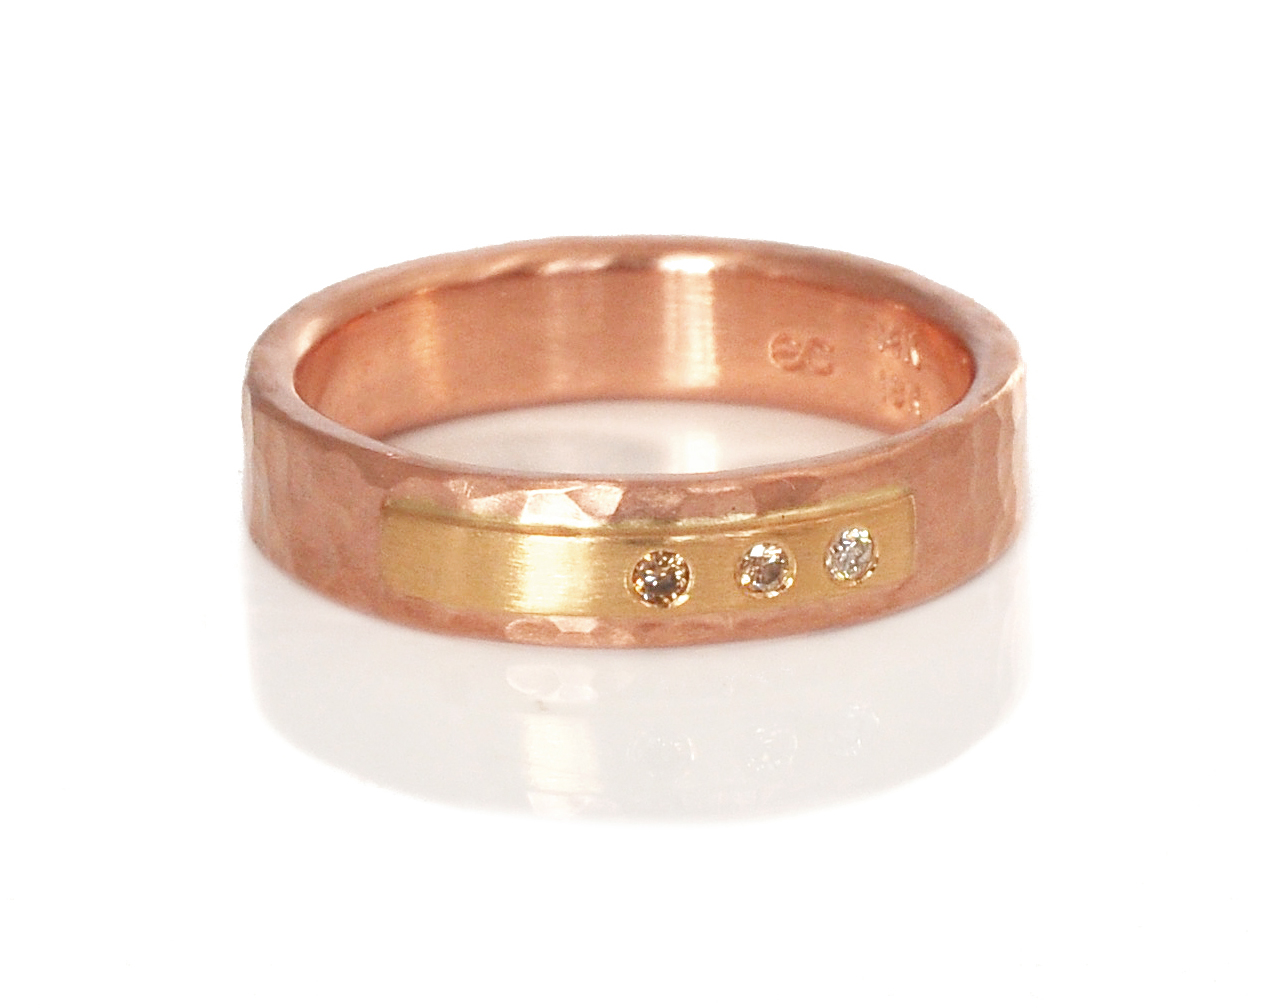 A classic EC Design Rivet Ring in hammered 14k red gold with a 18k yellow gold strip and an ombre of champagne to white diamonds.